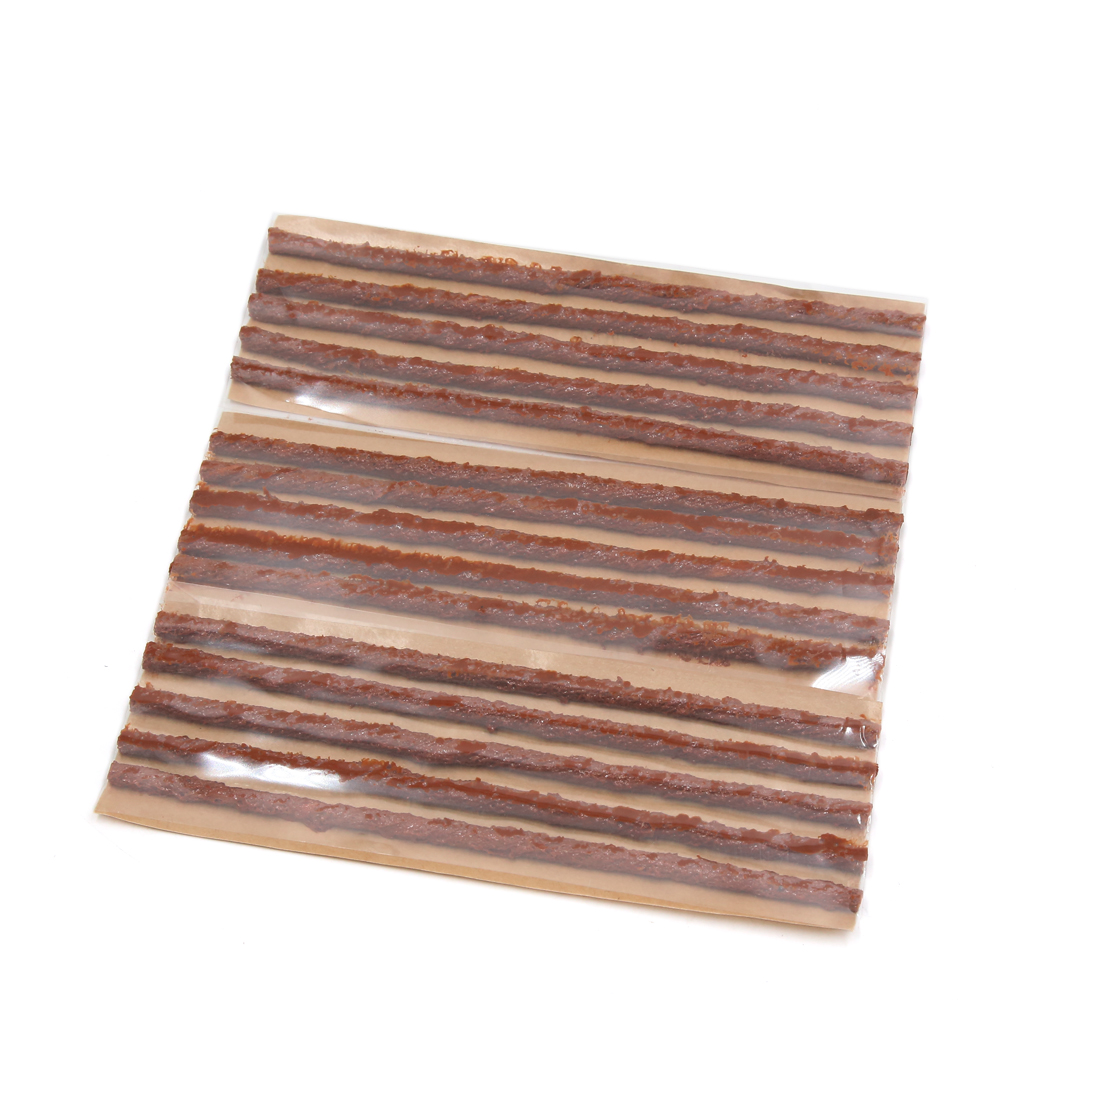 15pcs Brown Tubeless Tyre Tire Repairing Seals Rubber Strip for Car Motorcycle